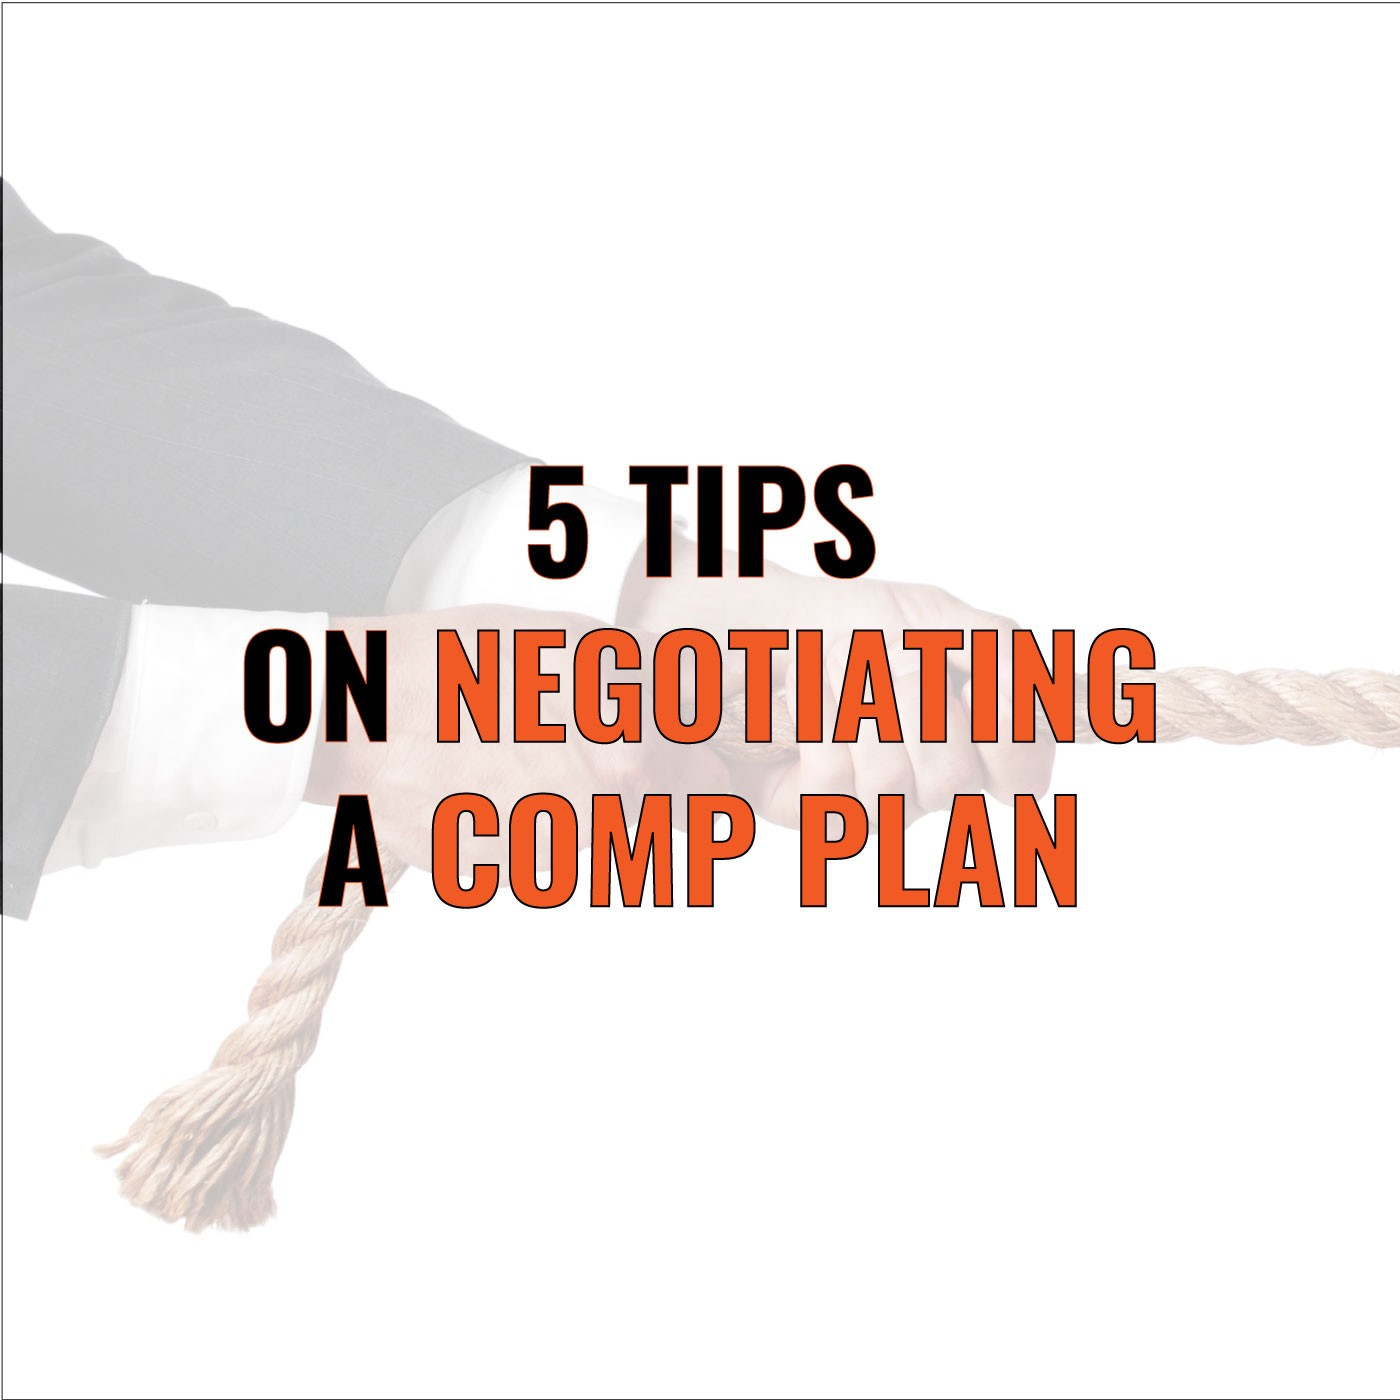 Brian Burns on 5 Tips on Negotiating a Comp Plan